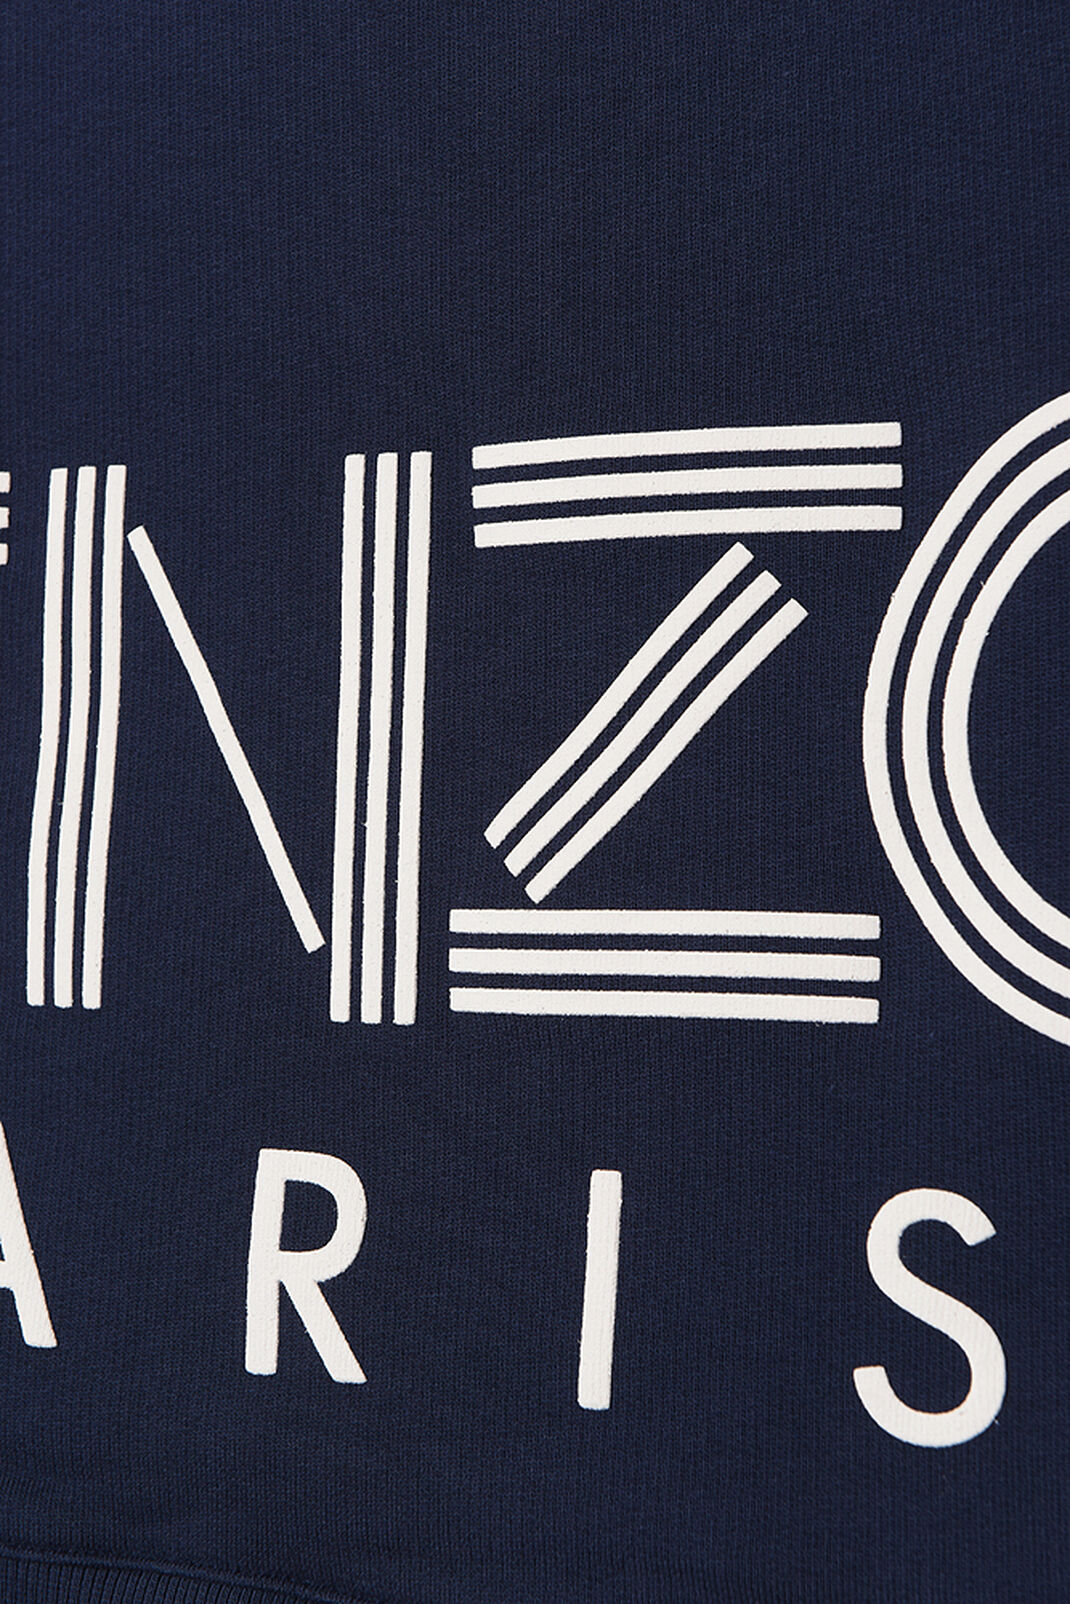 INK KENZO Logo Sweatshirt for men